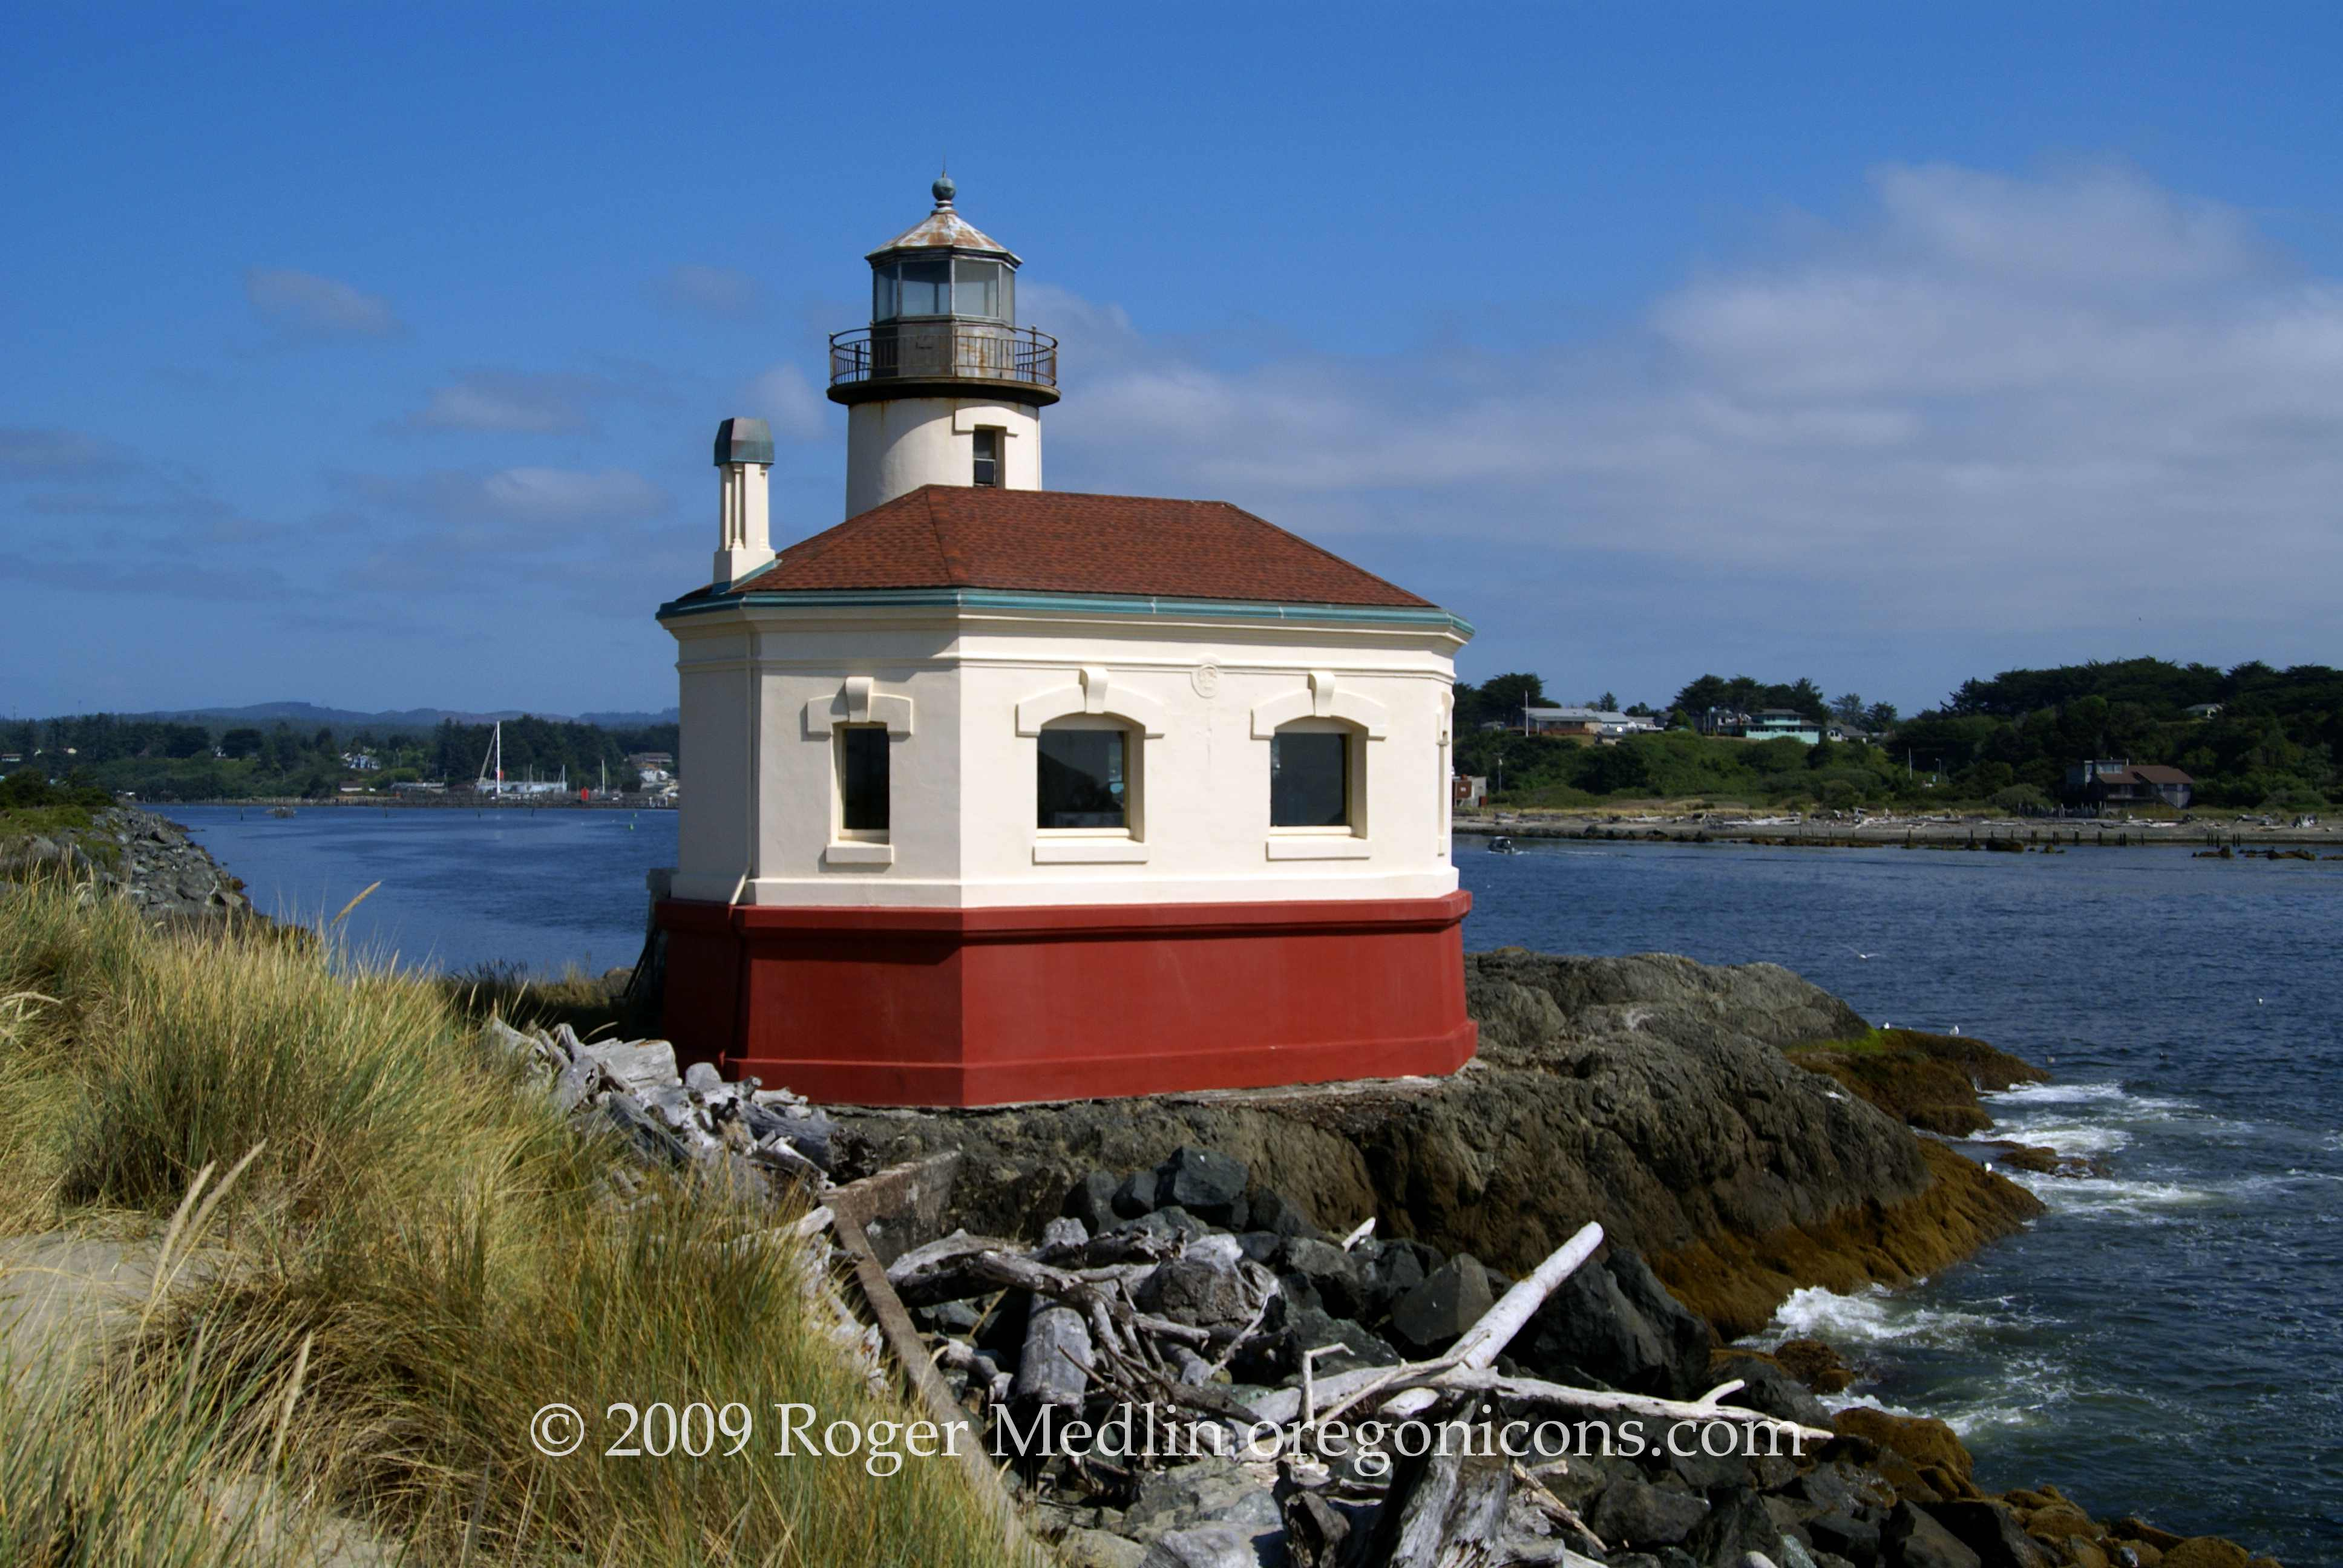 Roger Medlin 2009 Coquille Lighthouse